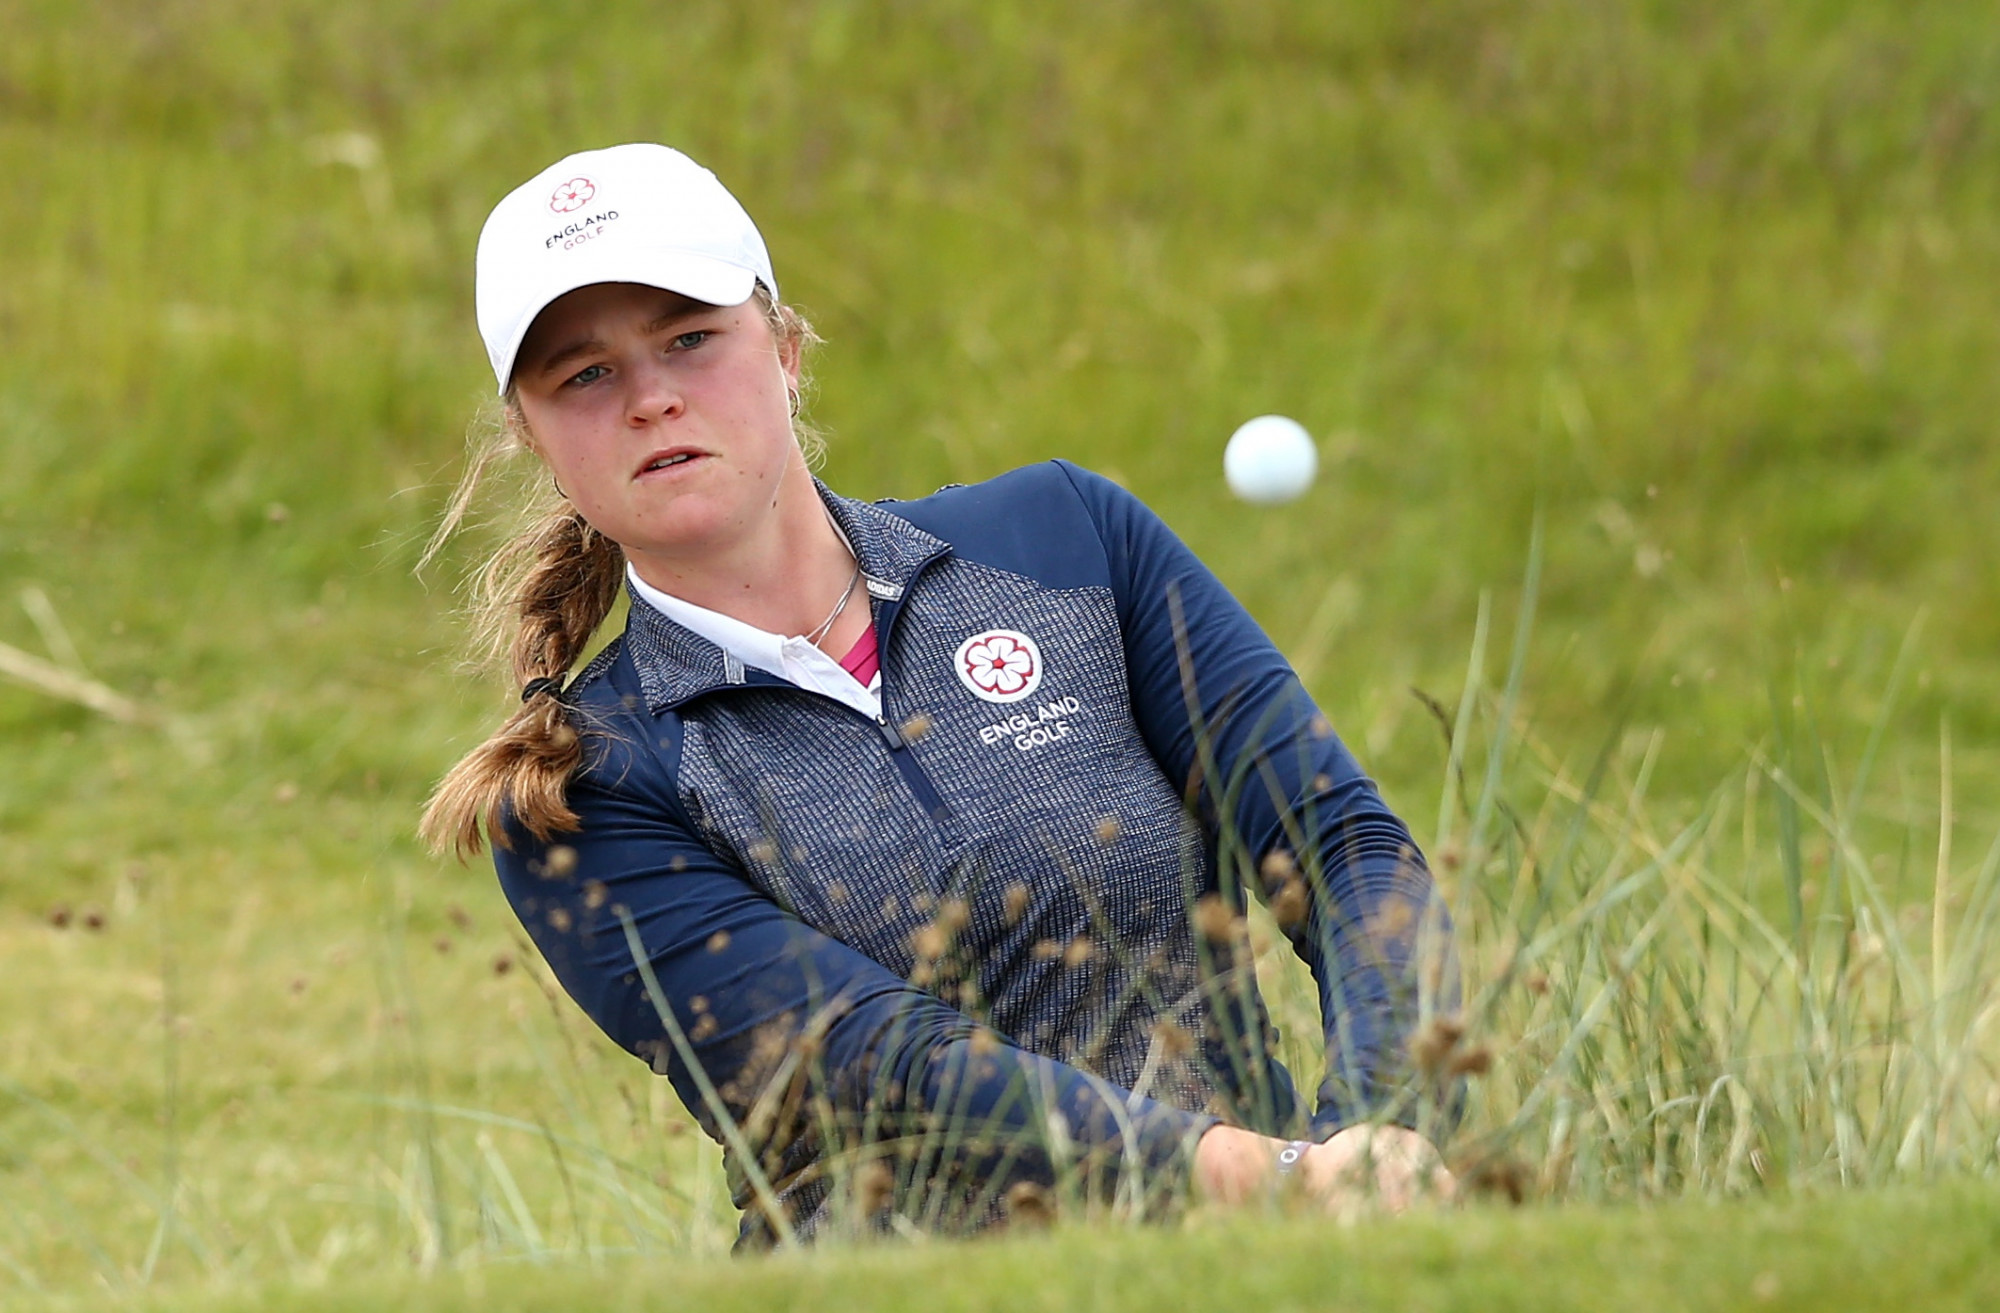 leth-nissen and rhodes fare well at county down